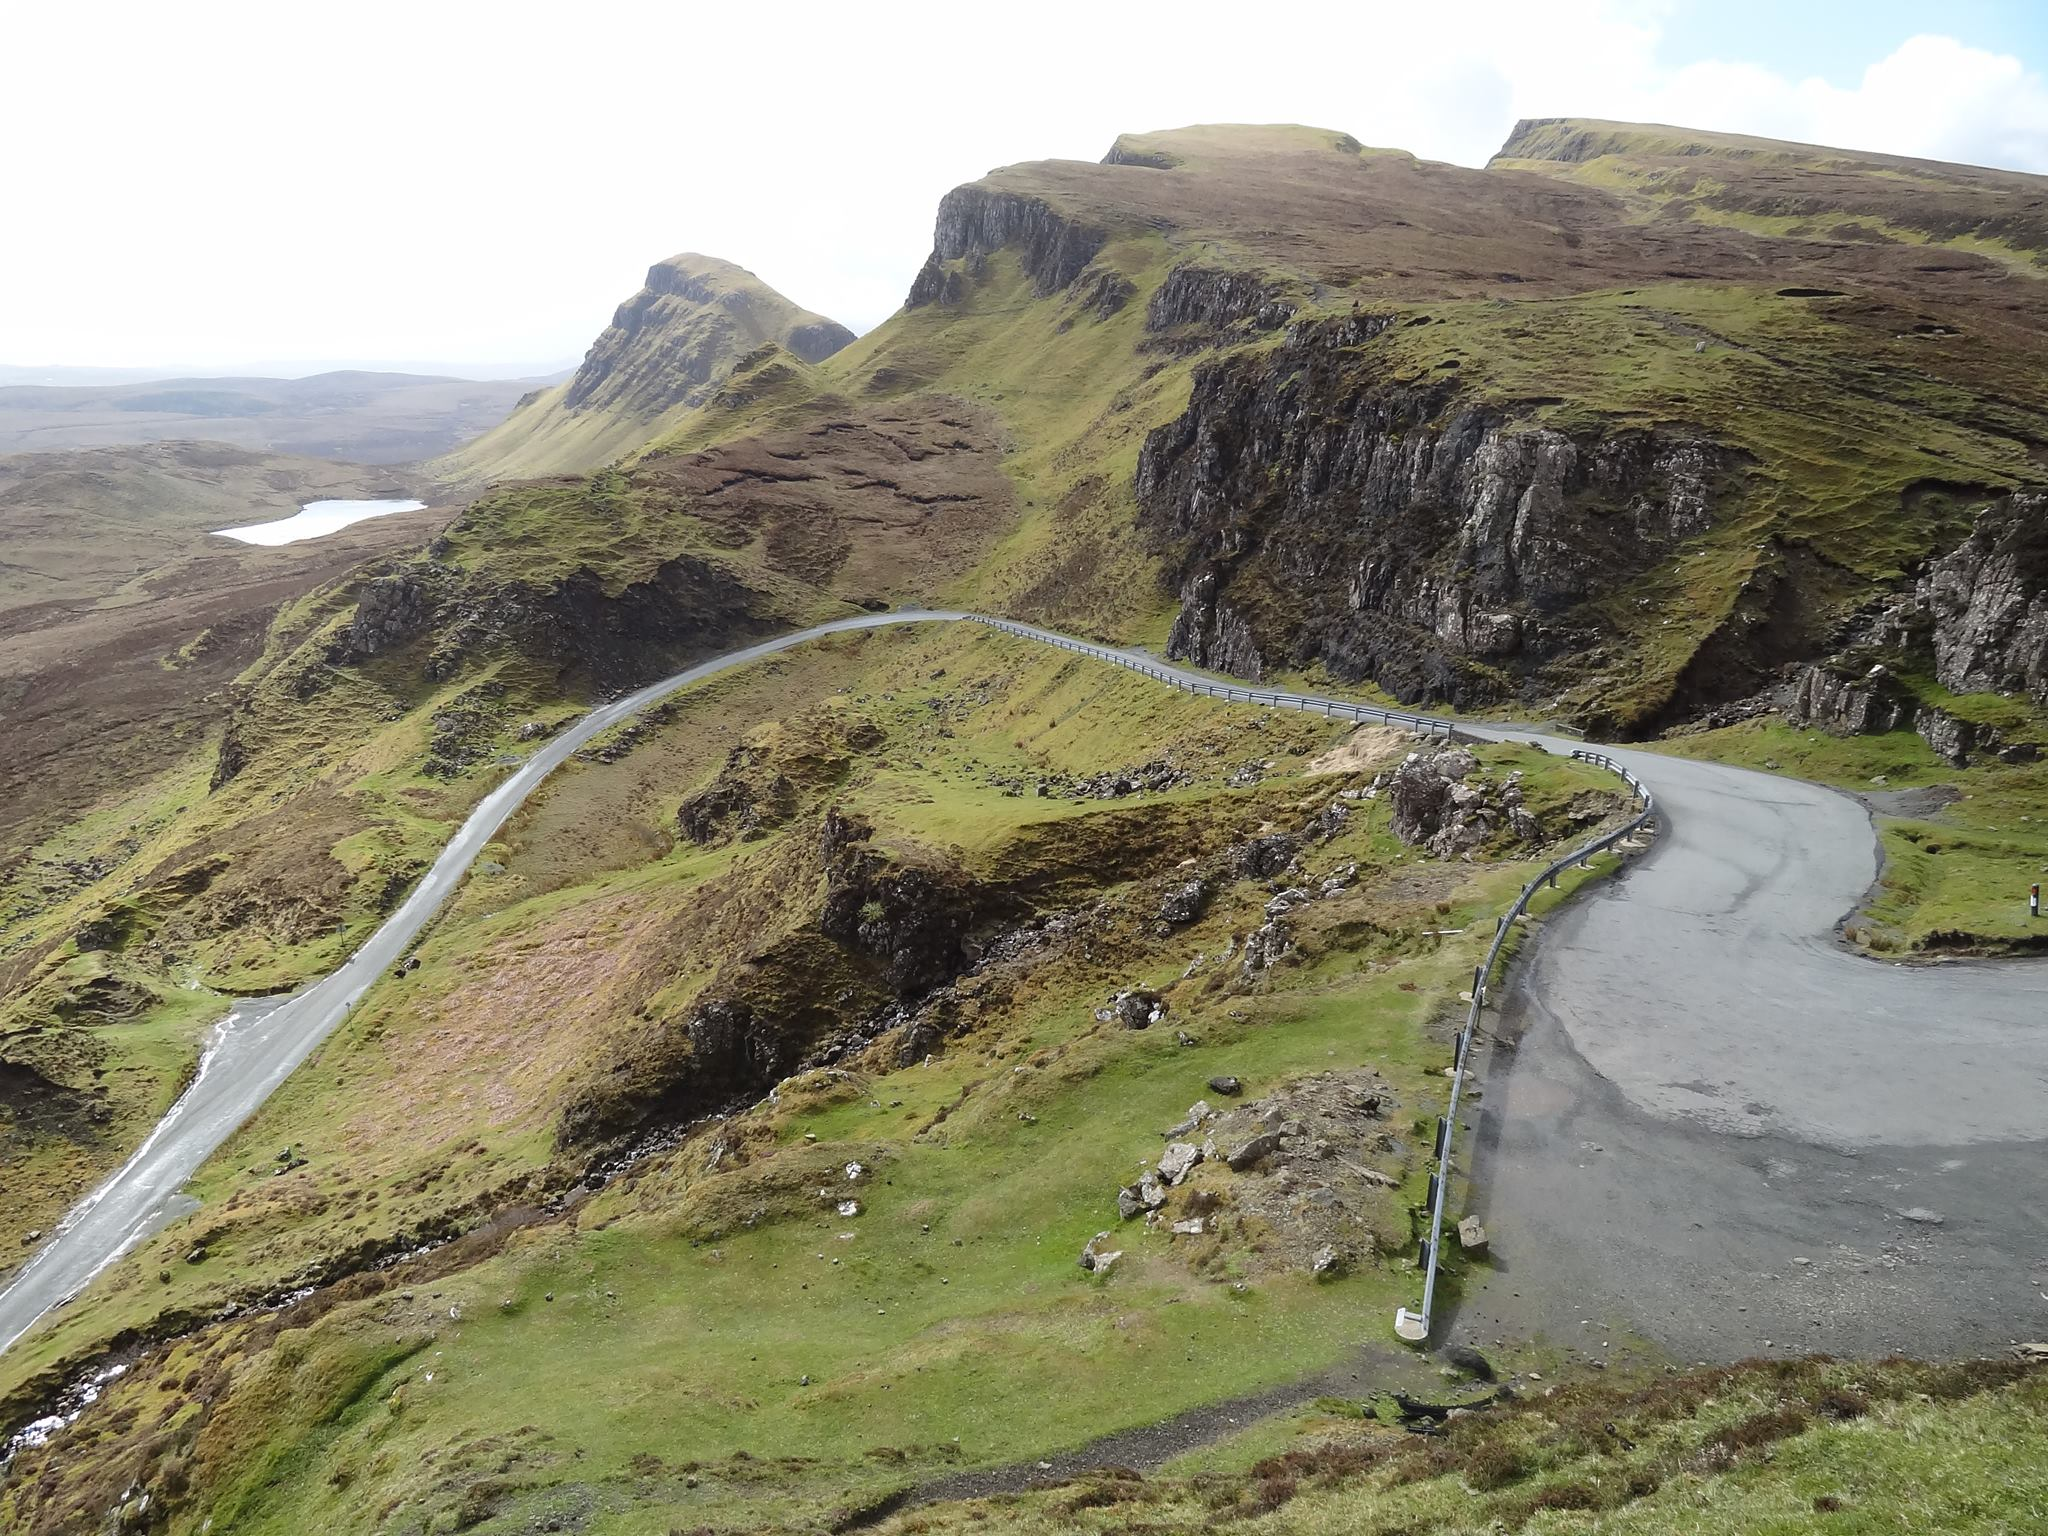 The Quiraing op Skye